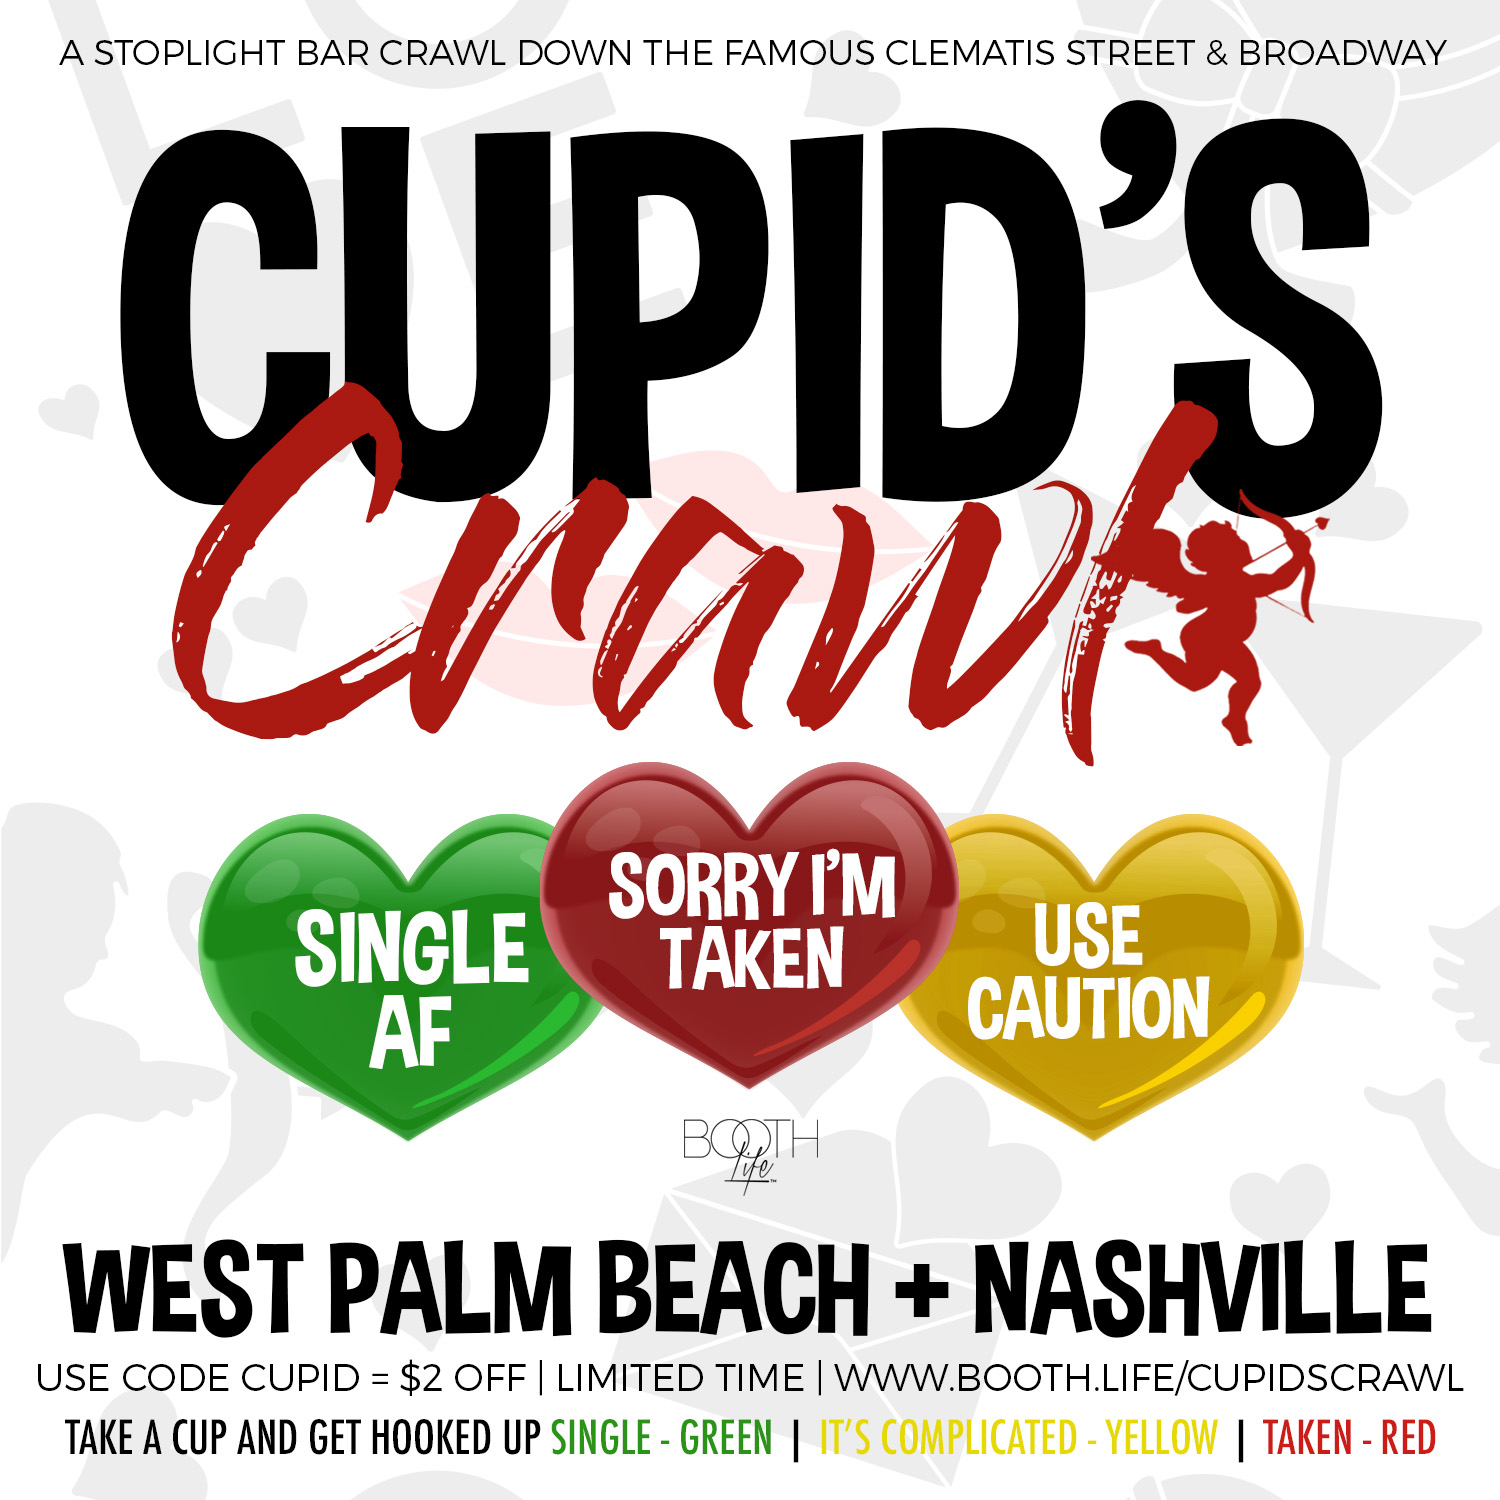 Nashville West Palm Beach Bar Crawl